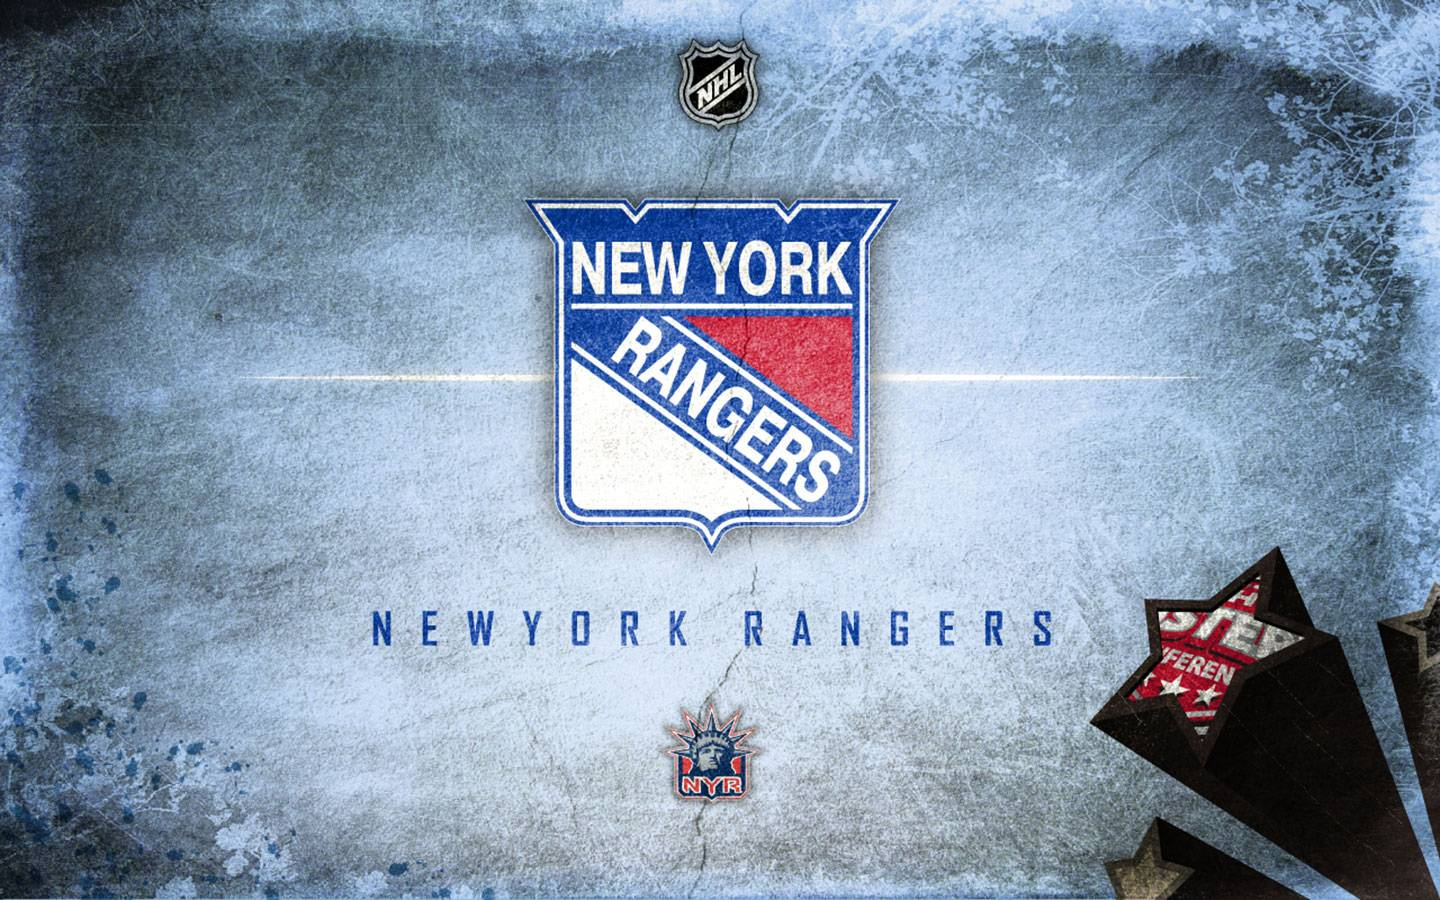 New York Rangers wallpapers New York Rangers background   Page 5 1440x900